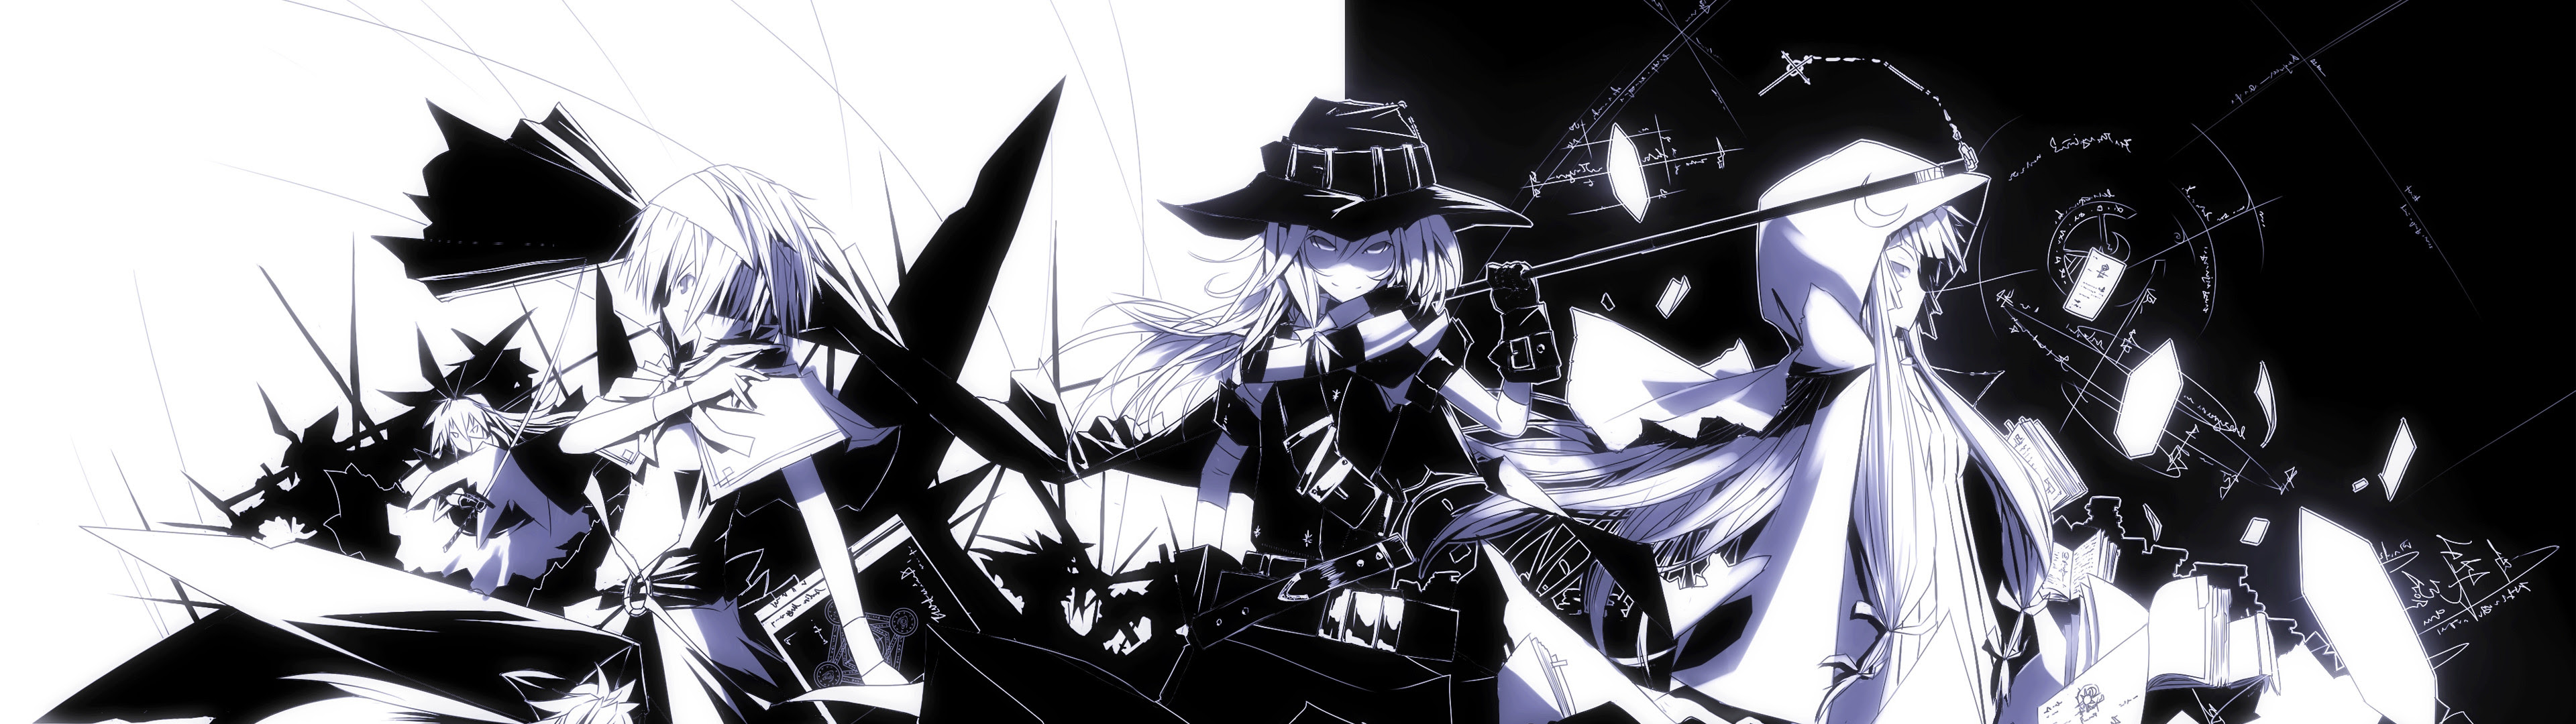 Anime Wallpaper 3840x1080 72 Images